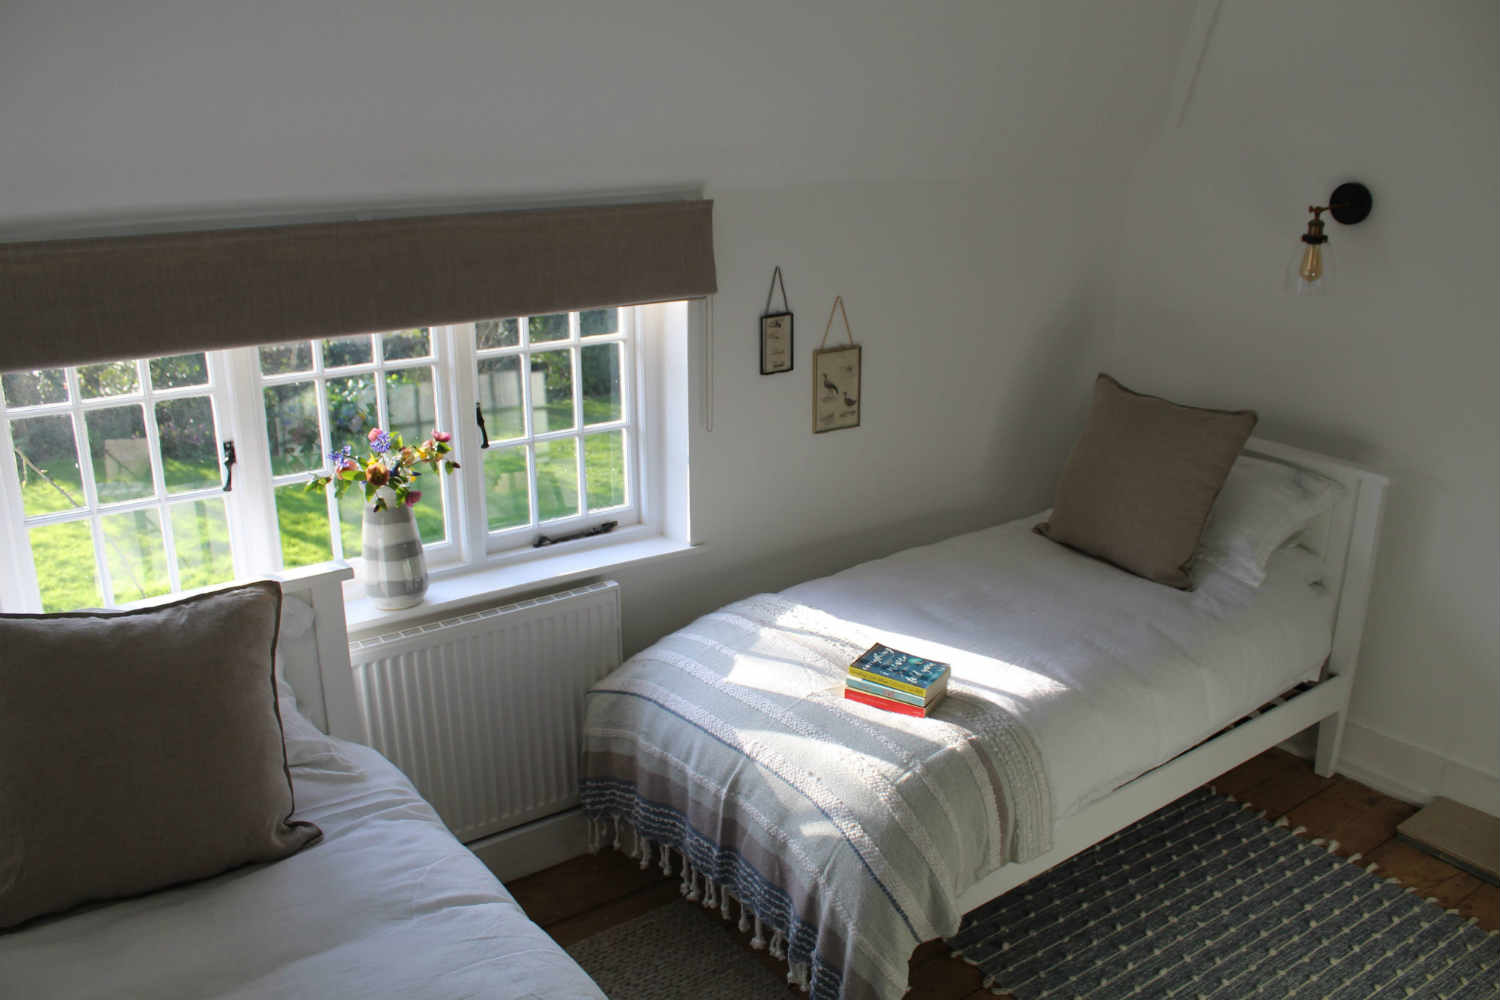 Bedroom 4 - two single beds